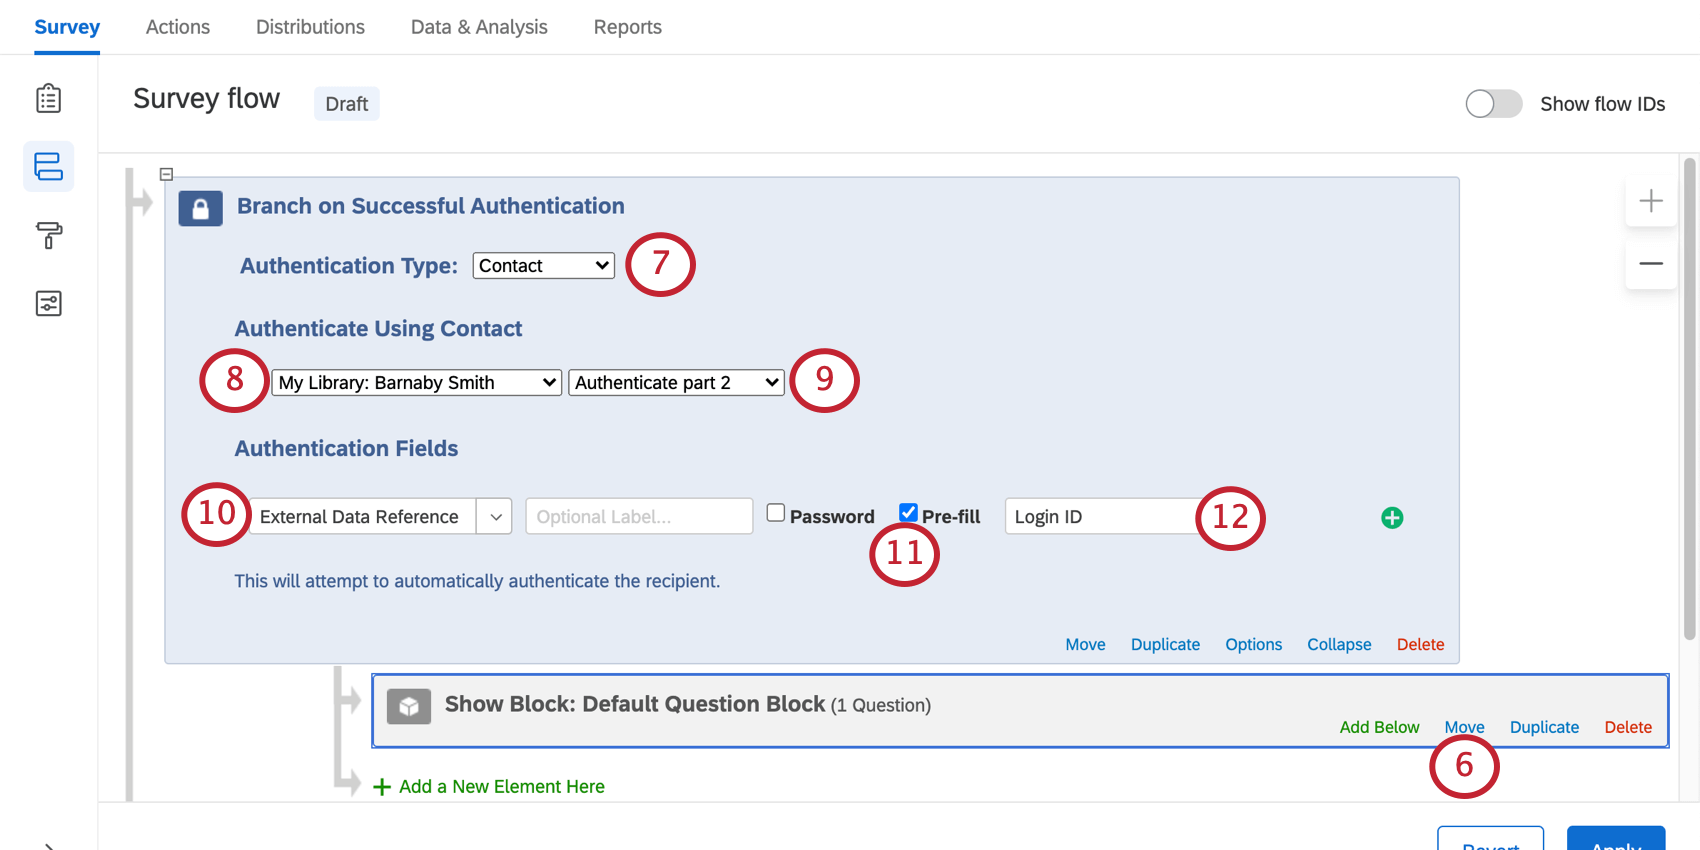 adding the authenticator based on contact, selecting the contact list, and then adding pre-fill based on loginID